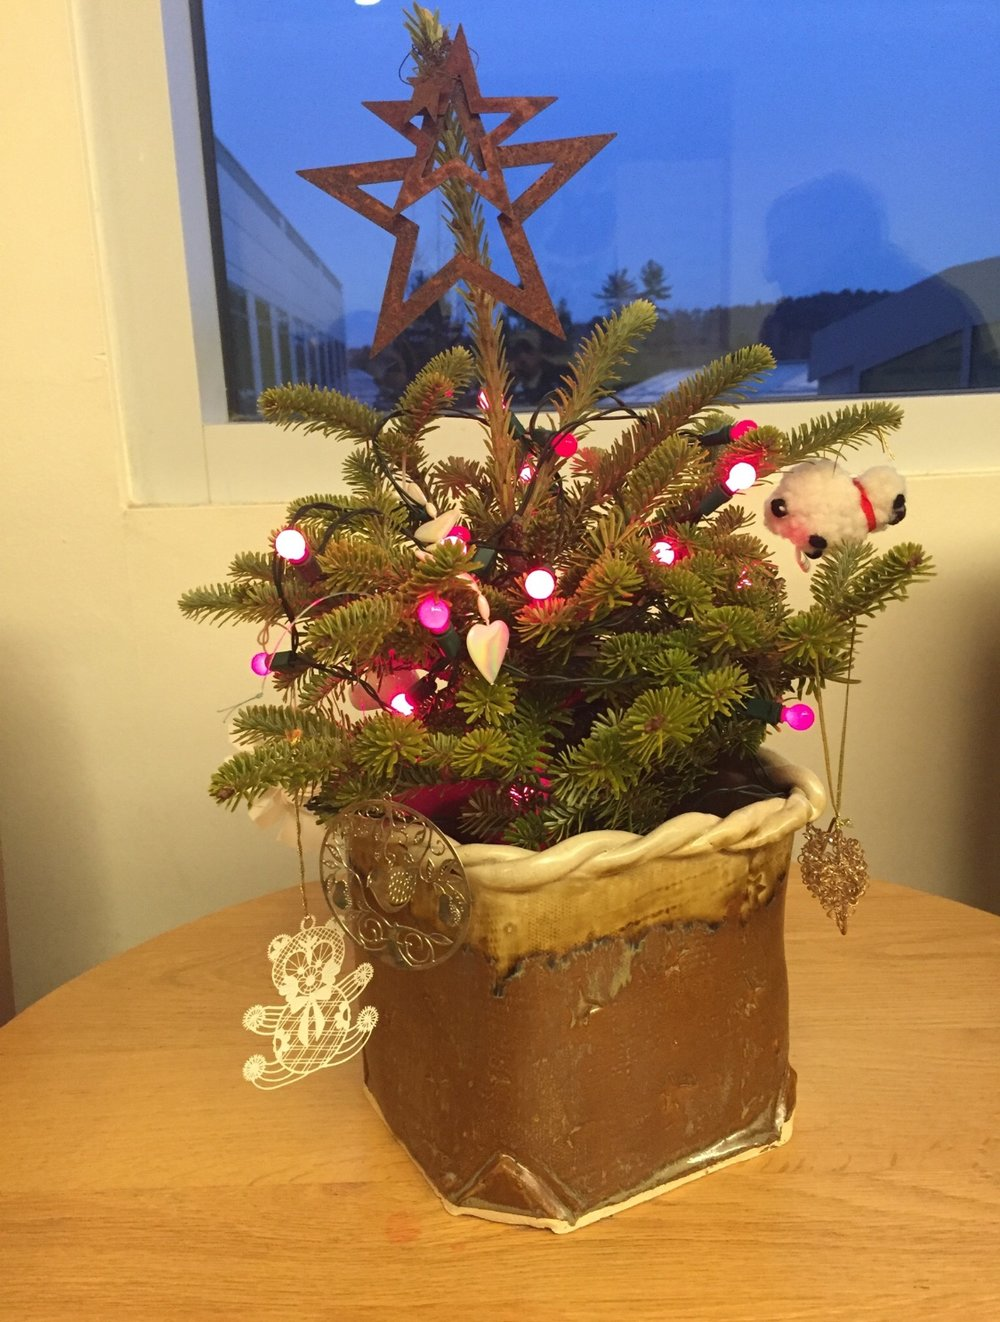 A Christmas tree plant, perfect for keeping those curious pets out of the water base!